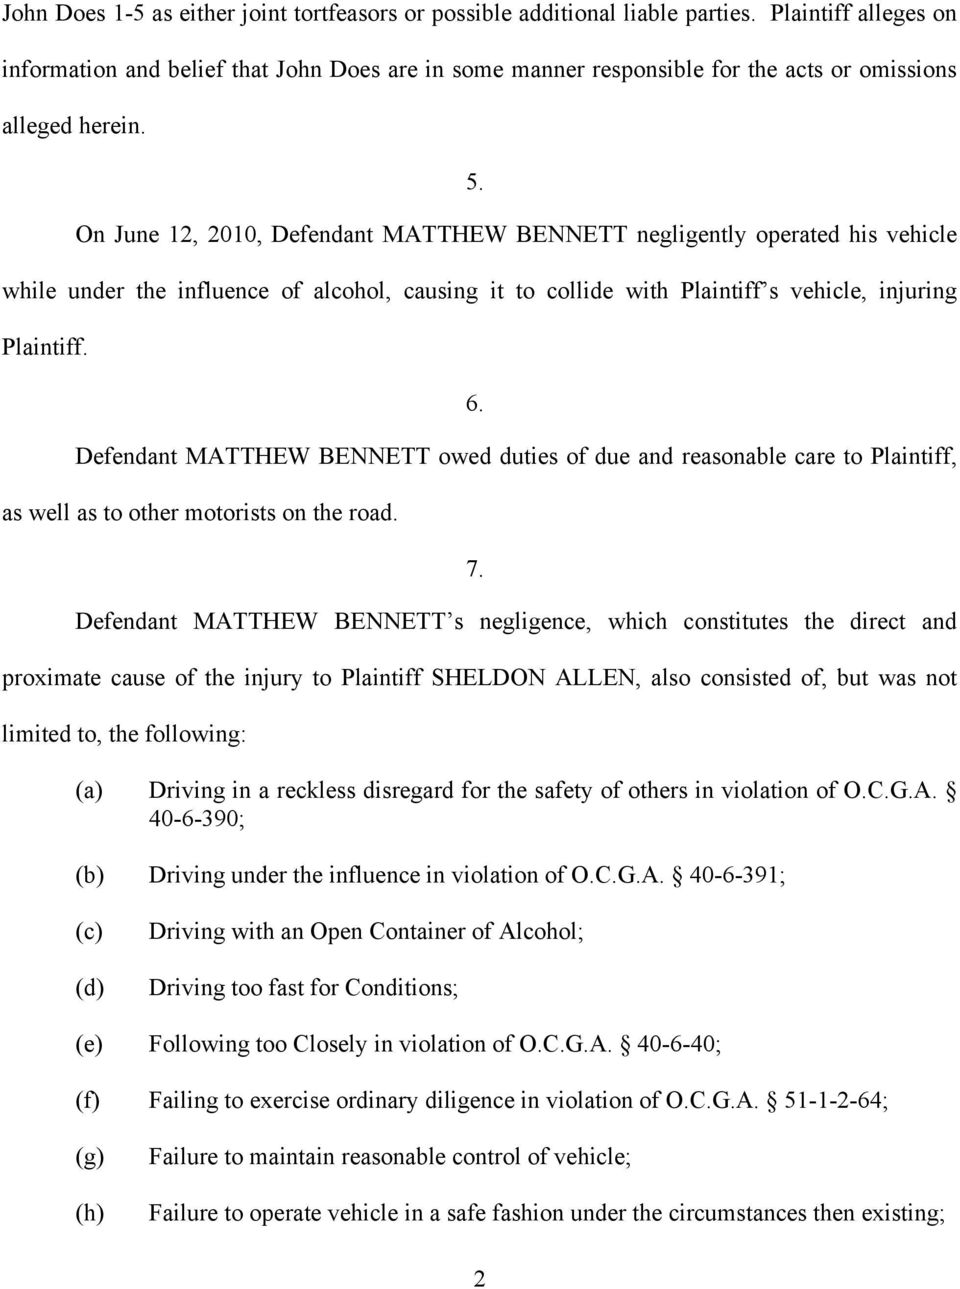 On June 12, 2010, Defendant MATTHEW BENNETT negligently operated his vehicle while under the influence of alcohol, causing it to collide with Plaintiff s vehicle, injuring Plaintiff. 6.